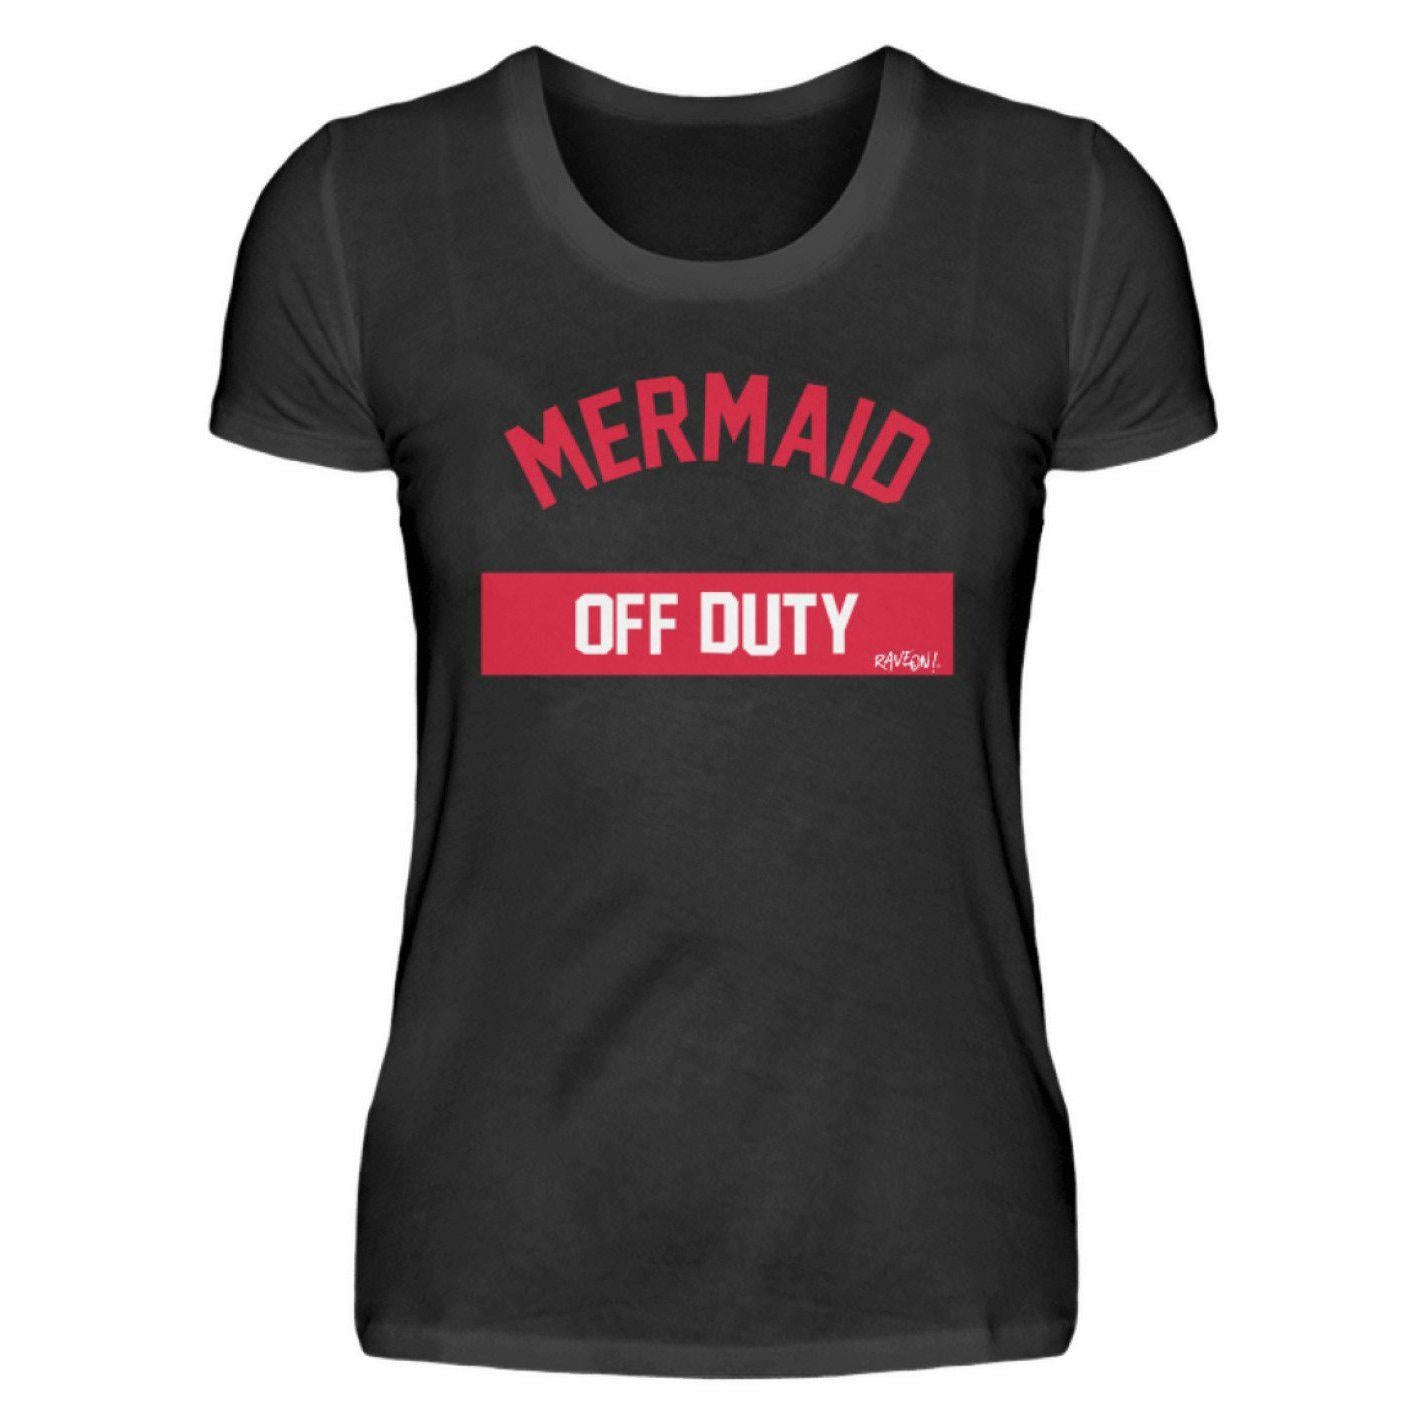 Mermaid off Duty - Rave On!® - Damenshirt-Damen Basic T-Shirt-Rave-On! I www.rave-on.shop I Deine Rave & Techno Szene Shop I apparel, BEAUTY, brand, Design - Mermaid off Duty - Rave On!®, duty, Fashion, i heart raves, jungfrau, Meerjungfrau, mermaid, On!®, Rave, rave apparel, rave brand, rave clothes, rave clothing, rave fashion, rave gear, Rave on, Rave On!®, rave shop, rave t shirt, rave wear, red, techno apparel, ® - Sexy Festival Streetwear , Clubwear & Raver Style